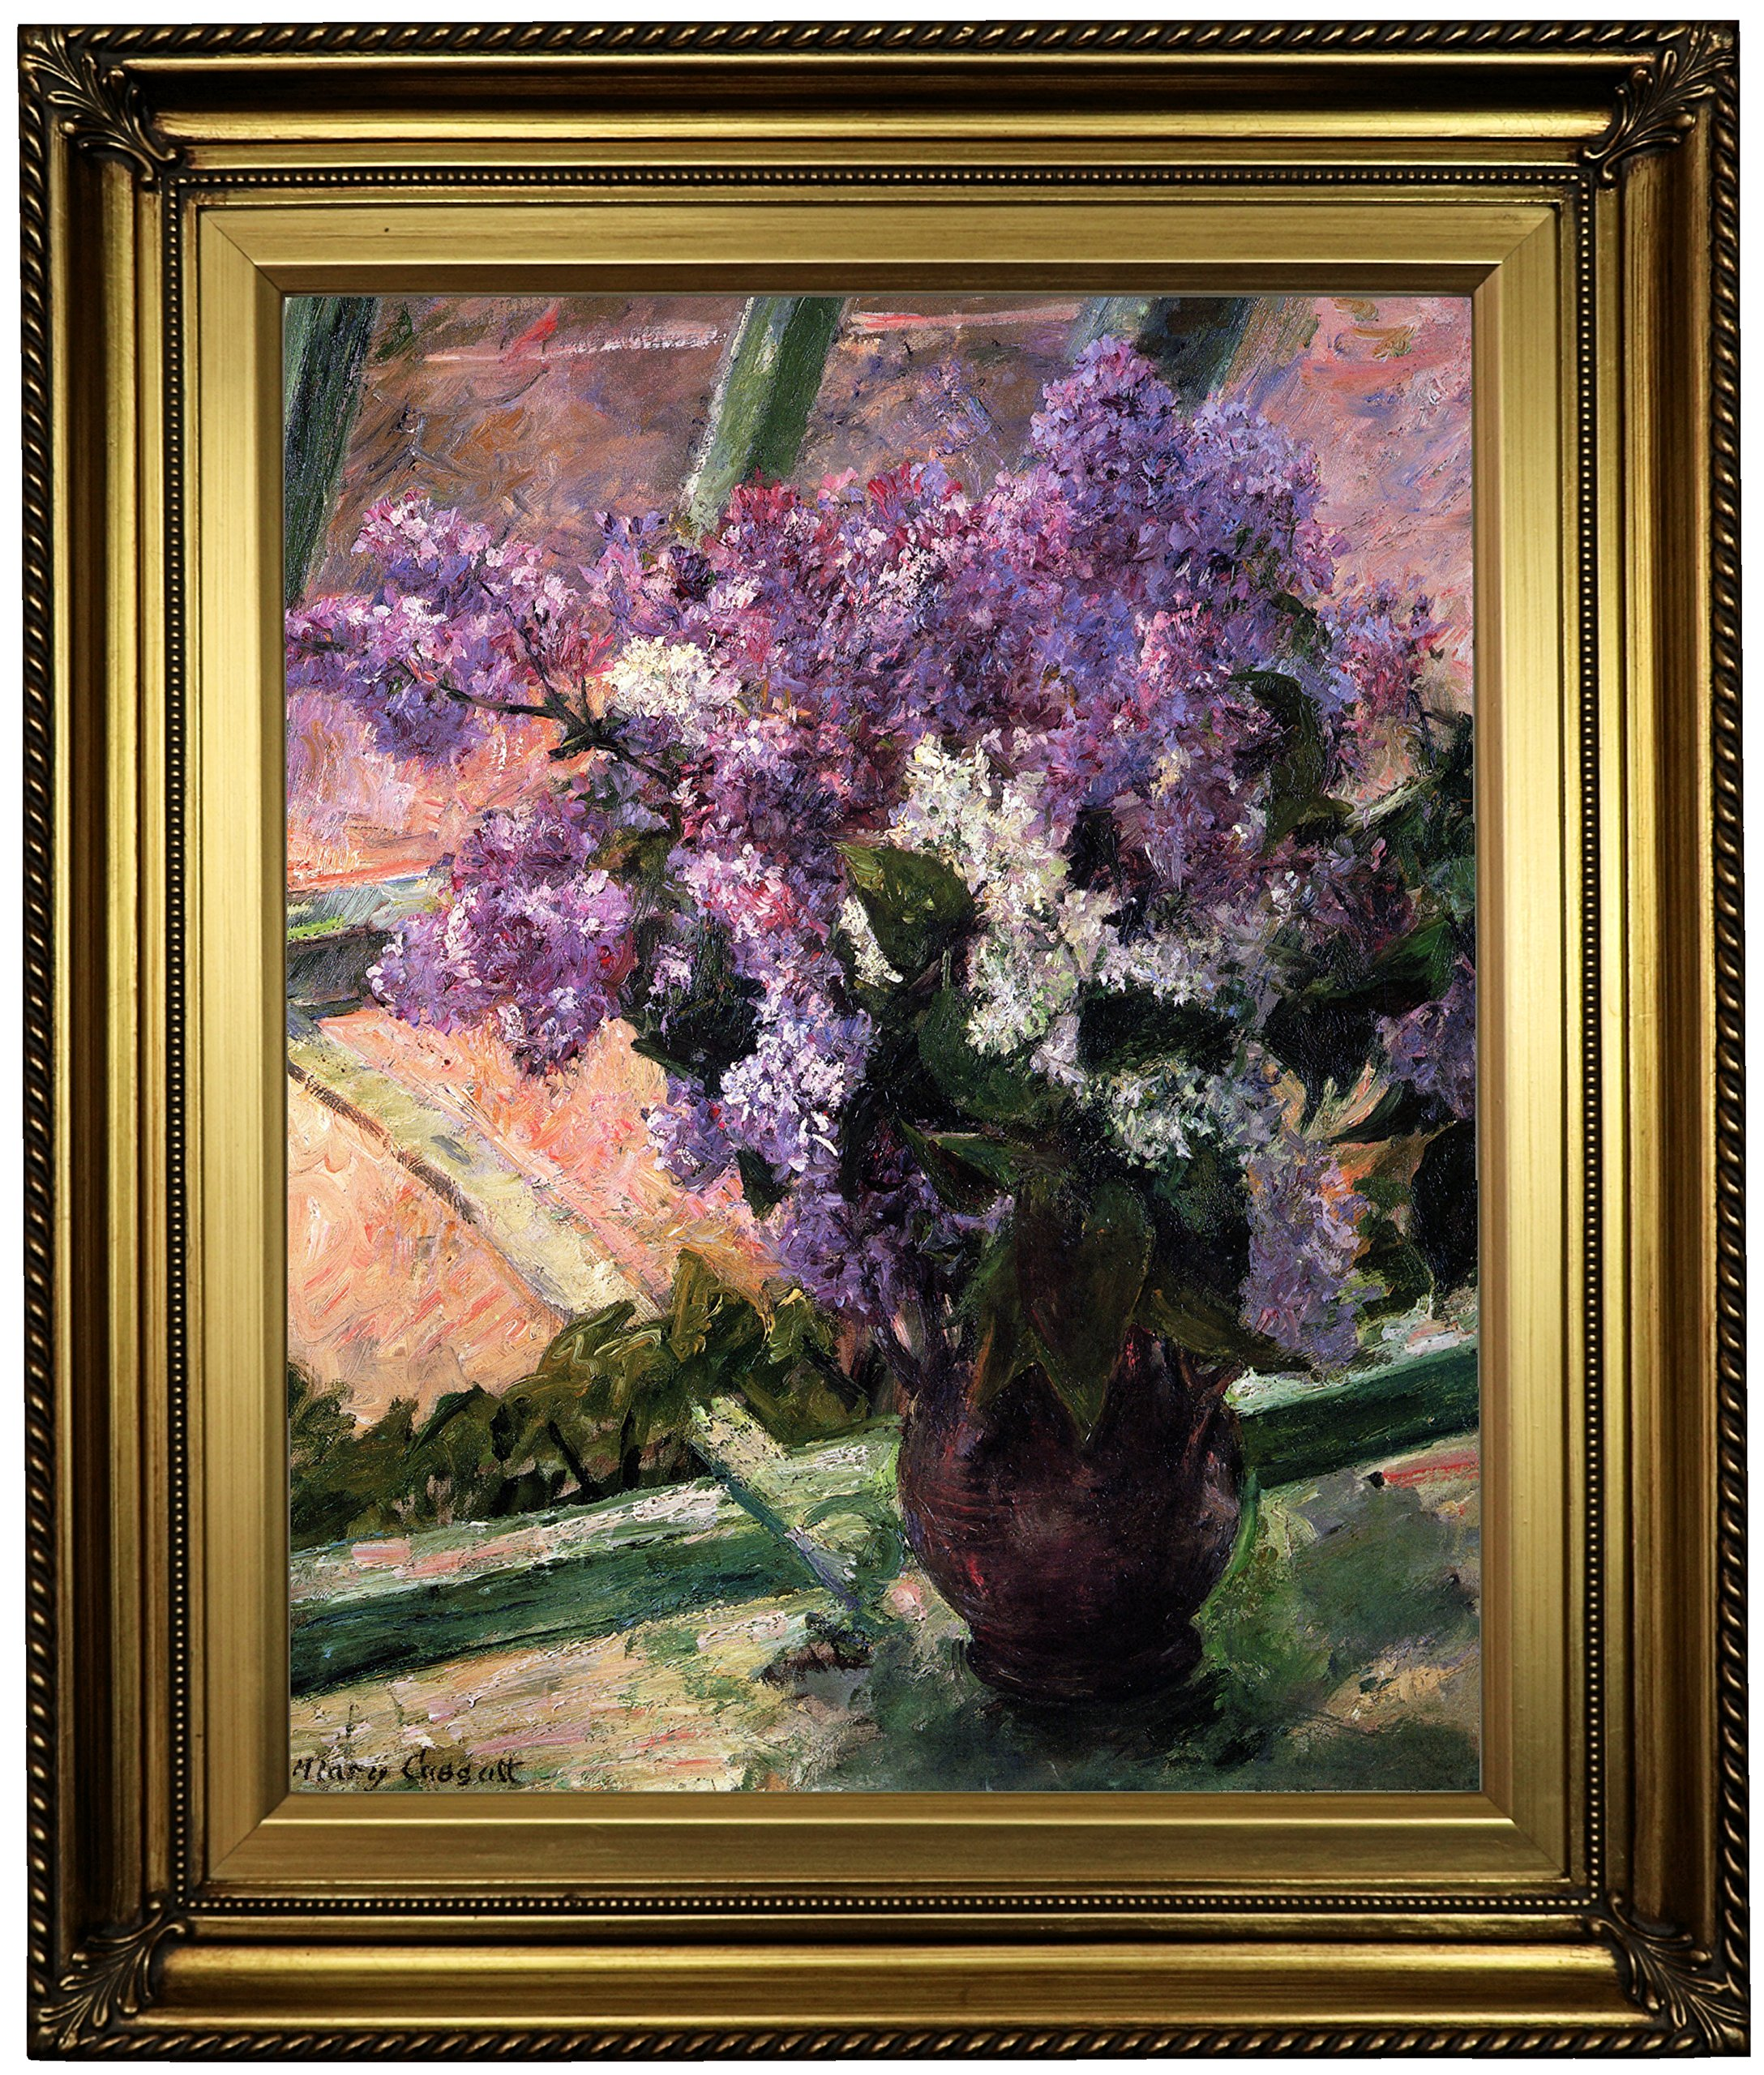 Historic Art Gallery Lilacs in a Window 1880 by Mary Cassatt Framed Canvas Print, 16'' x 20'', Gold Leaf